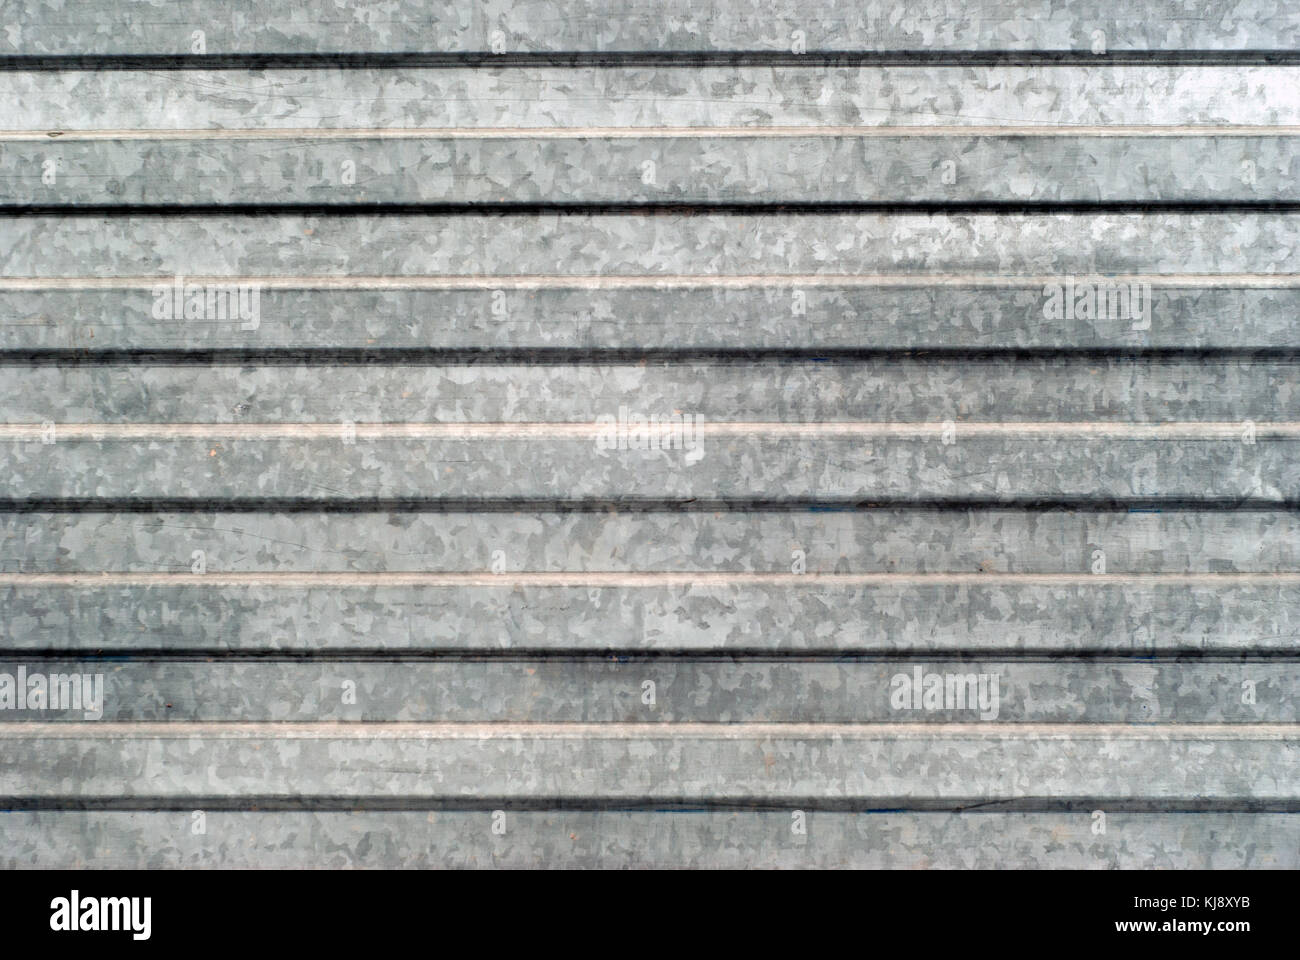 background, texture: surface area of corrugated galvanized sheet metal - Stock Image